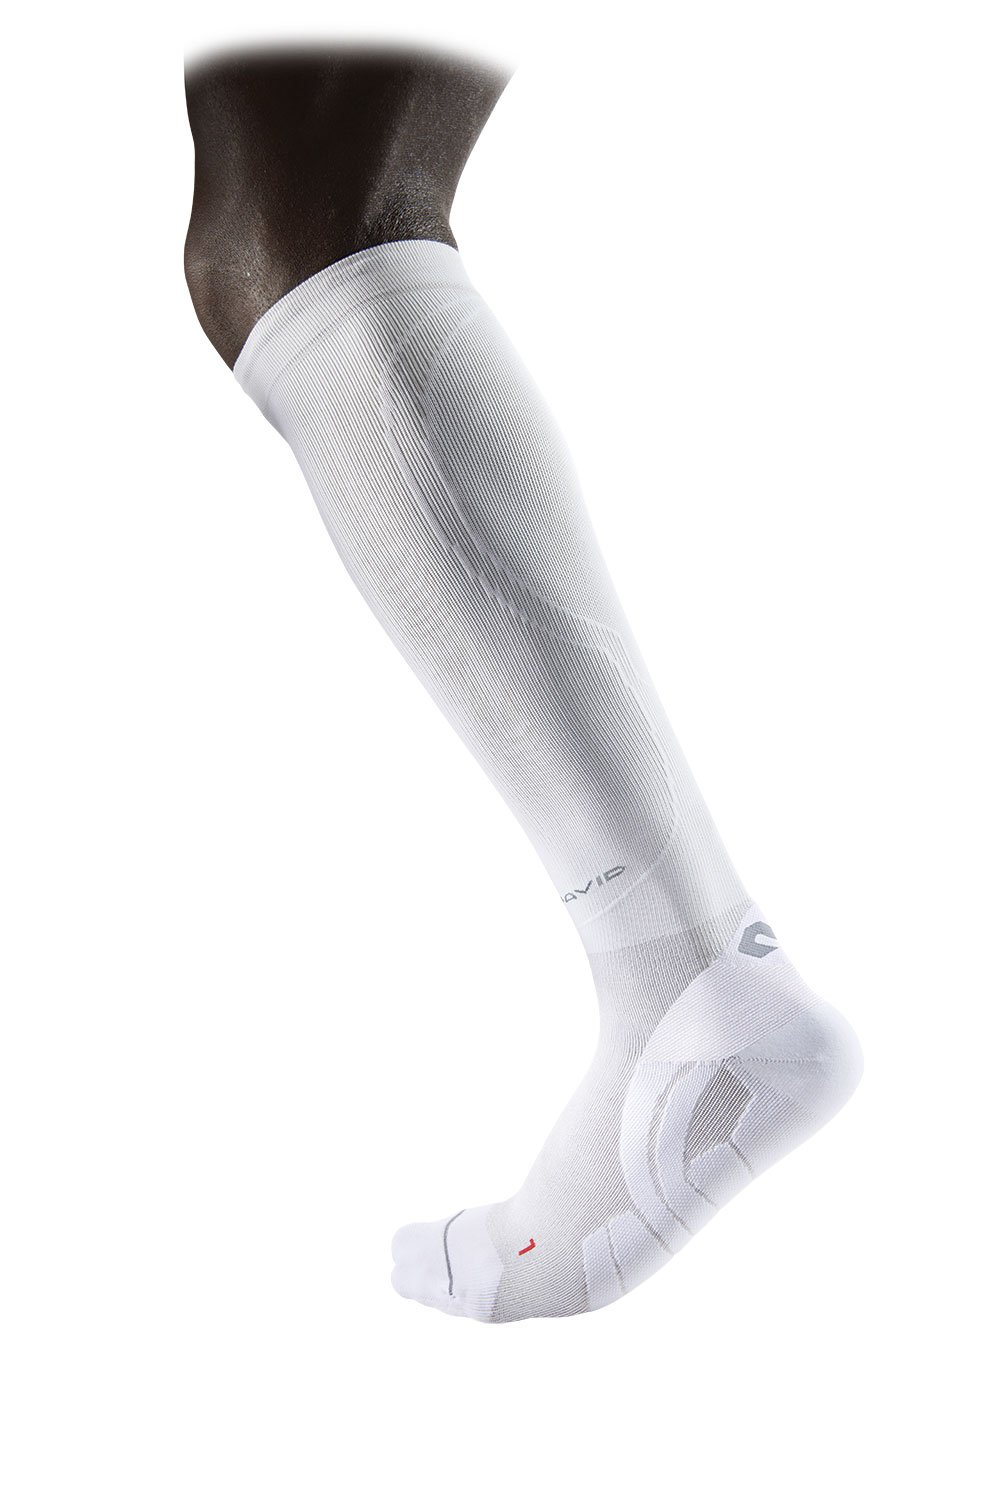 McDavid 8834 Team Socks, White by McDavid